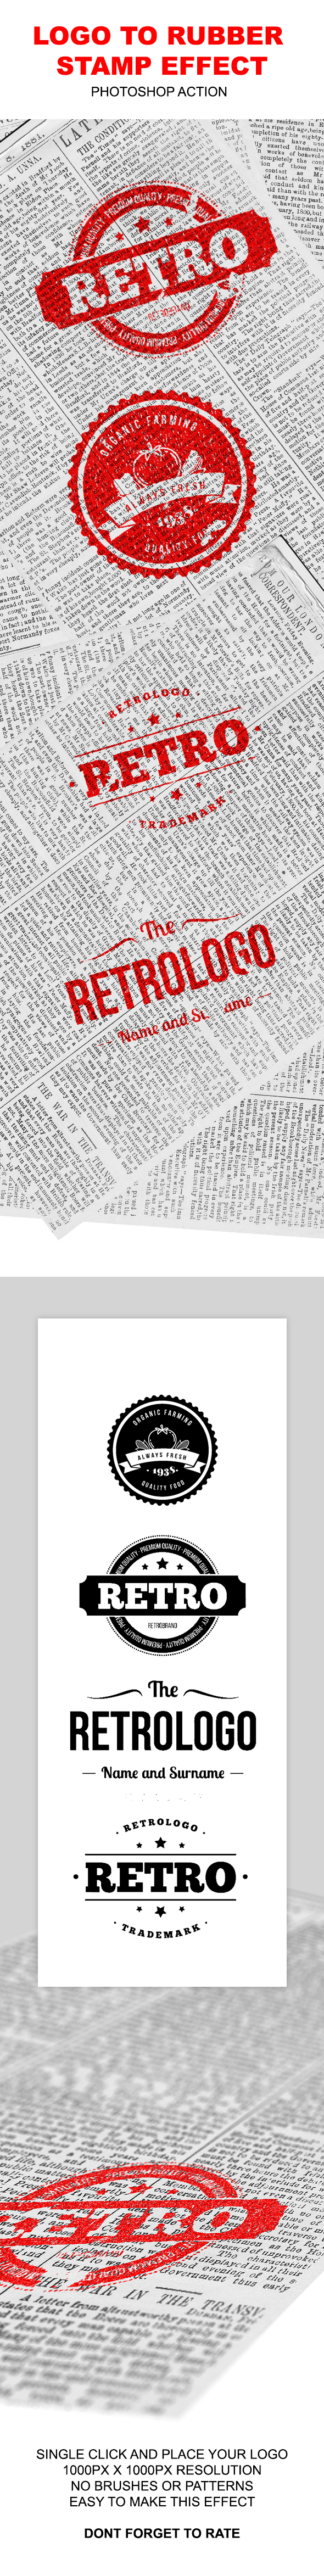 Logo to Rubber Stamp - Actions Photoshop